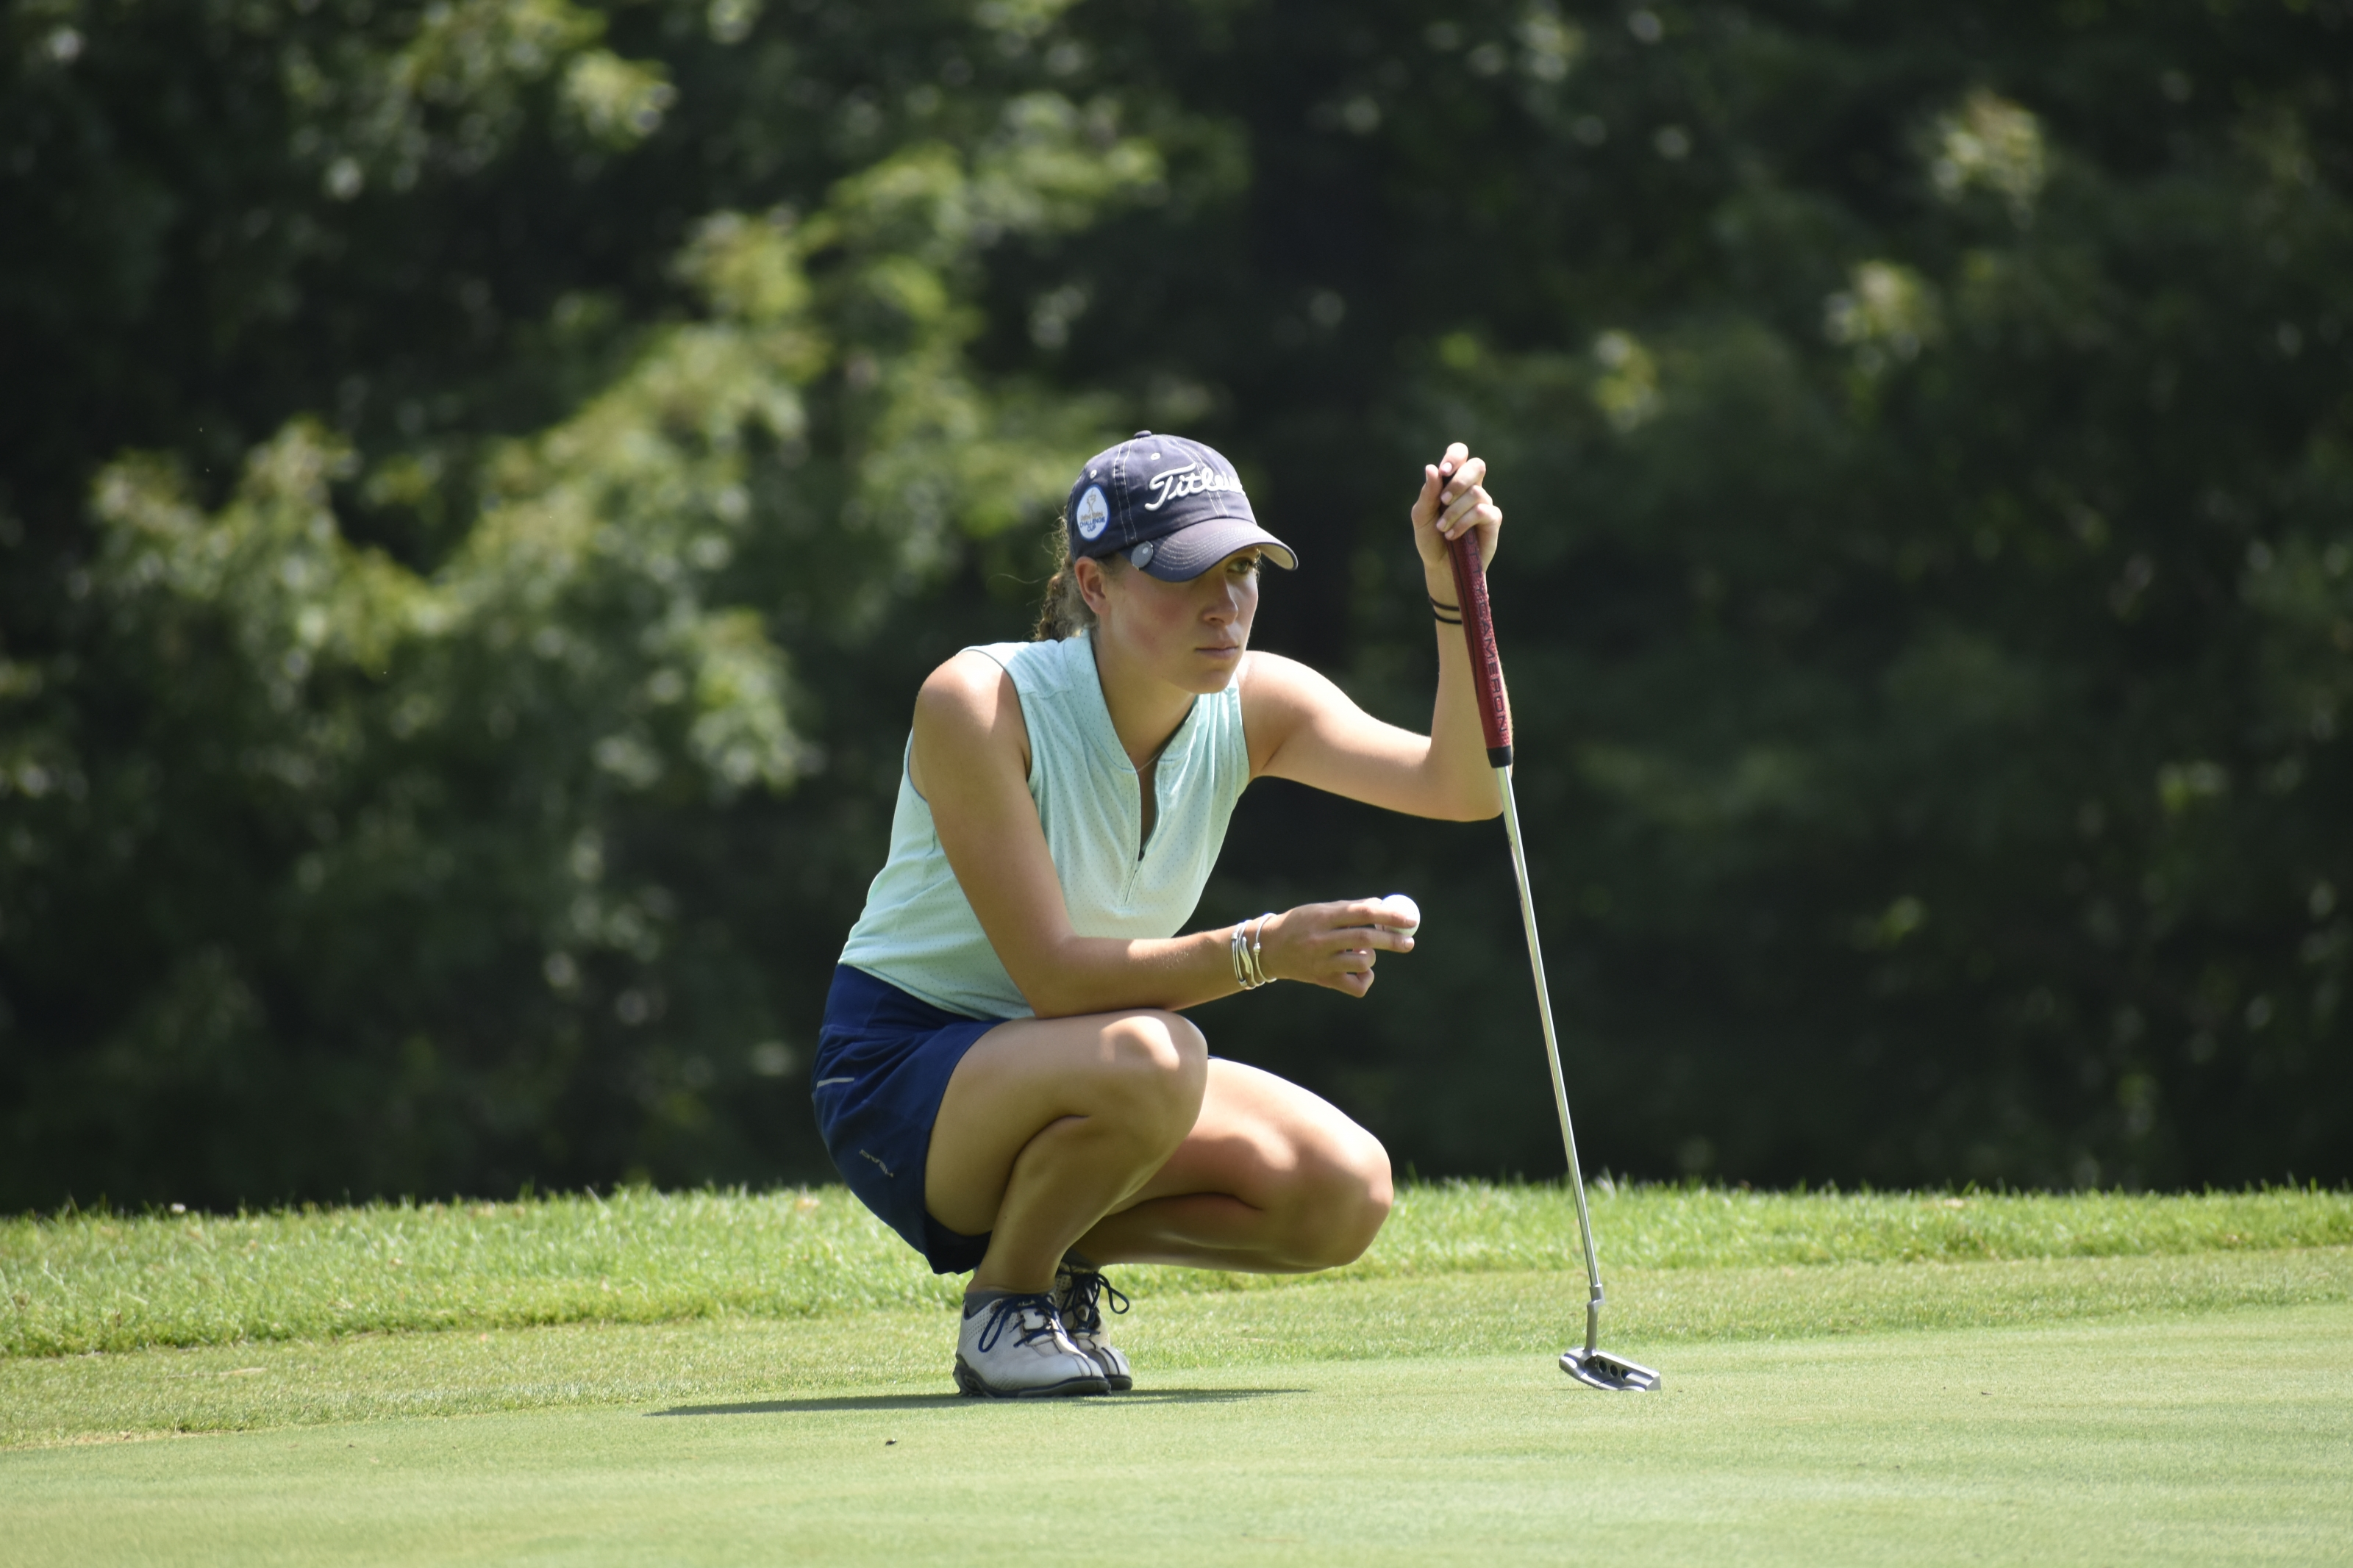 Youth on Course Announces Partnership with New Hampshire Golf Association